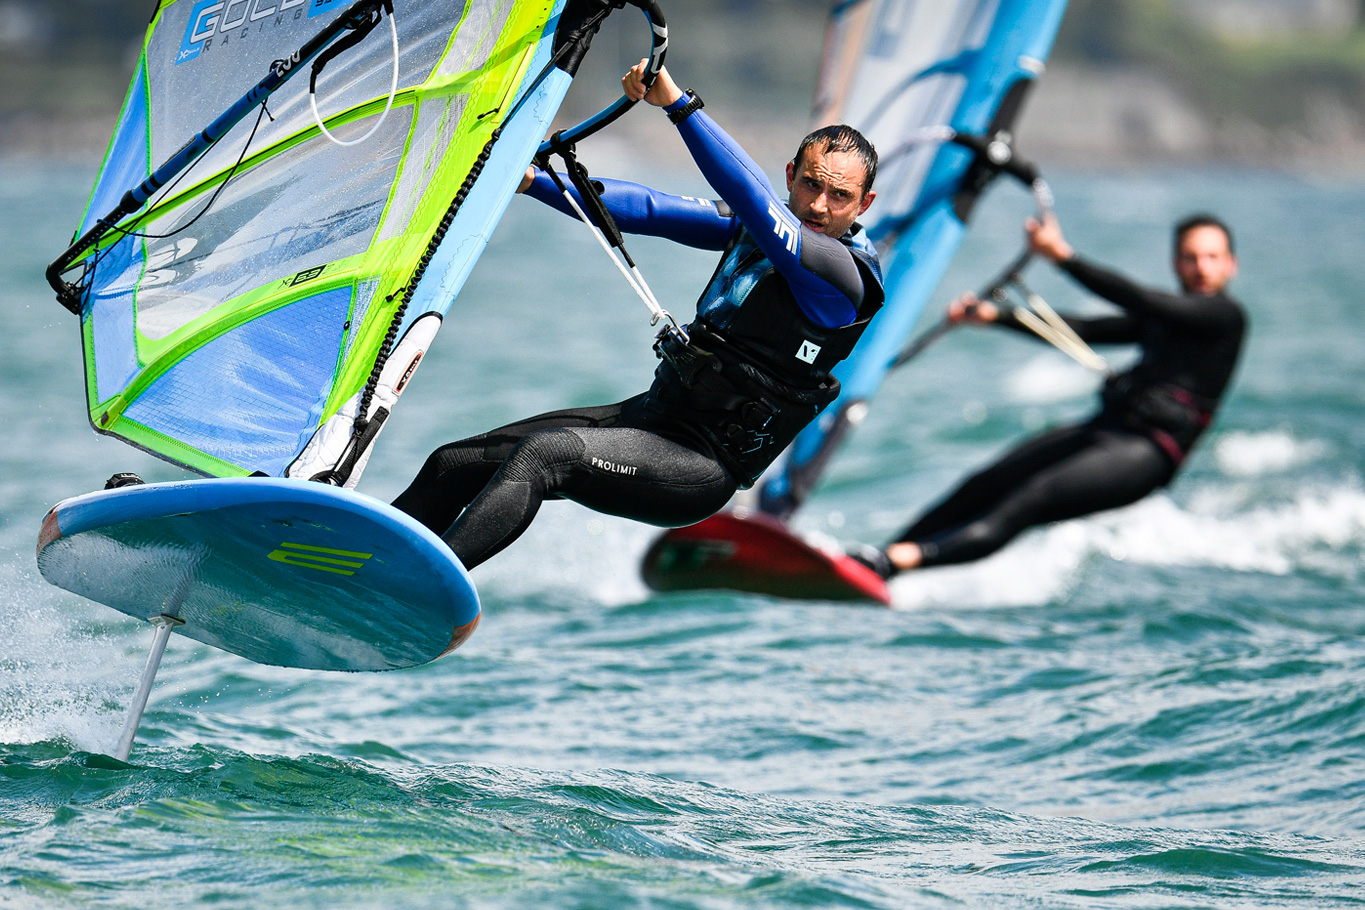 photographie-sports-nautiques-13